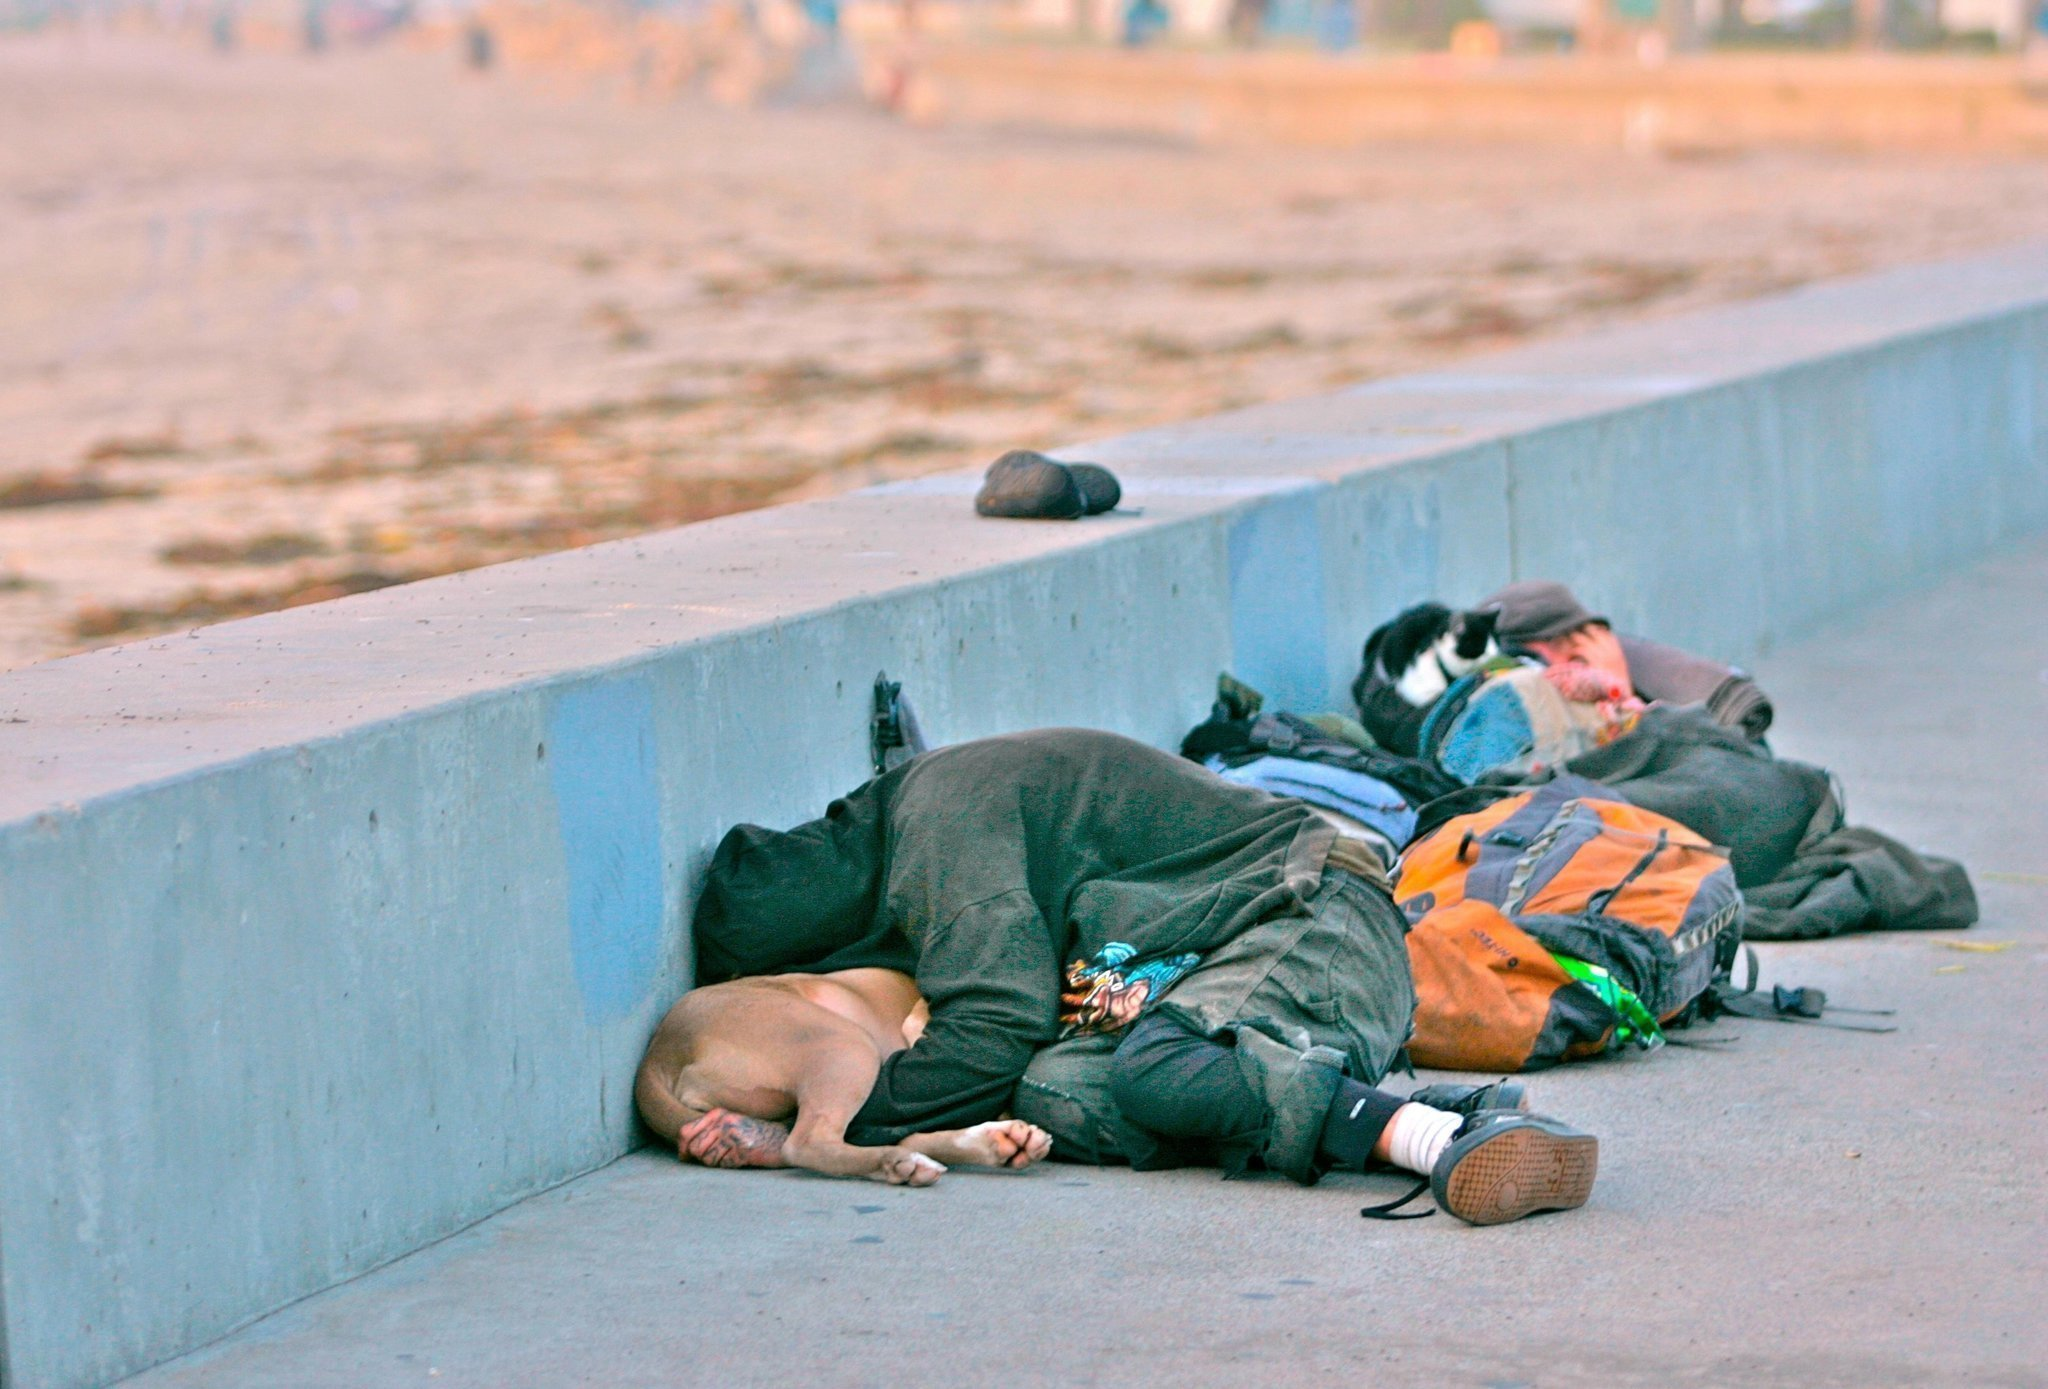 homelessness is rising The number of homeless people across the country increased for the first time this year since the depths of the recession, an increase tied to rising rents in states.